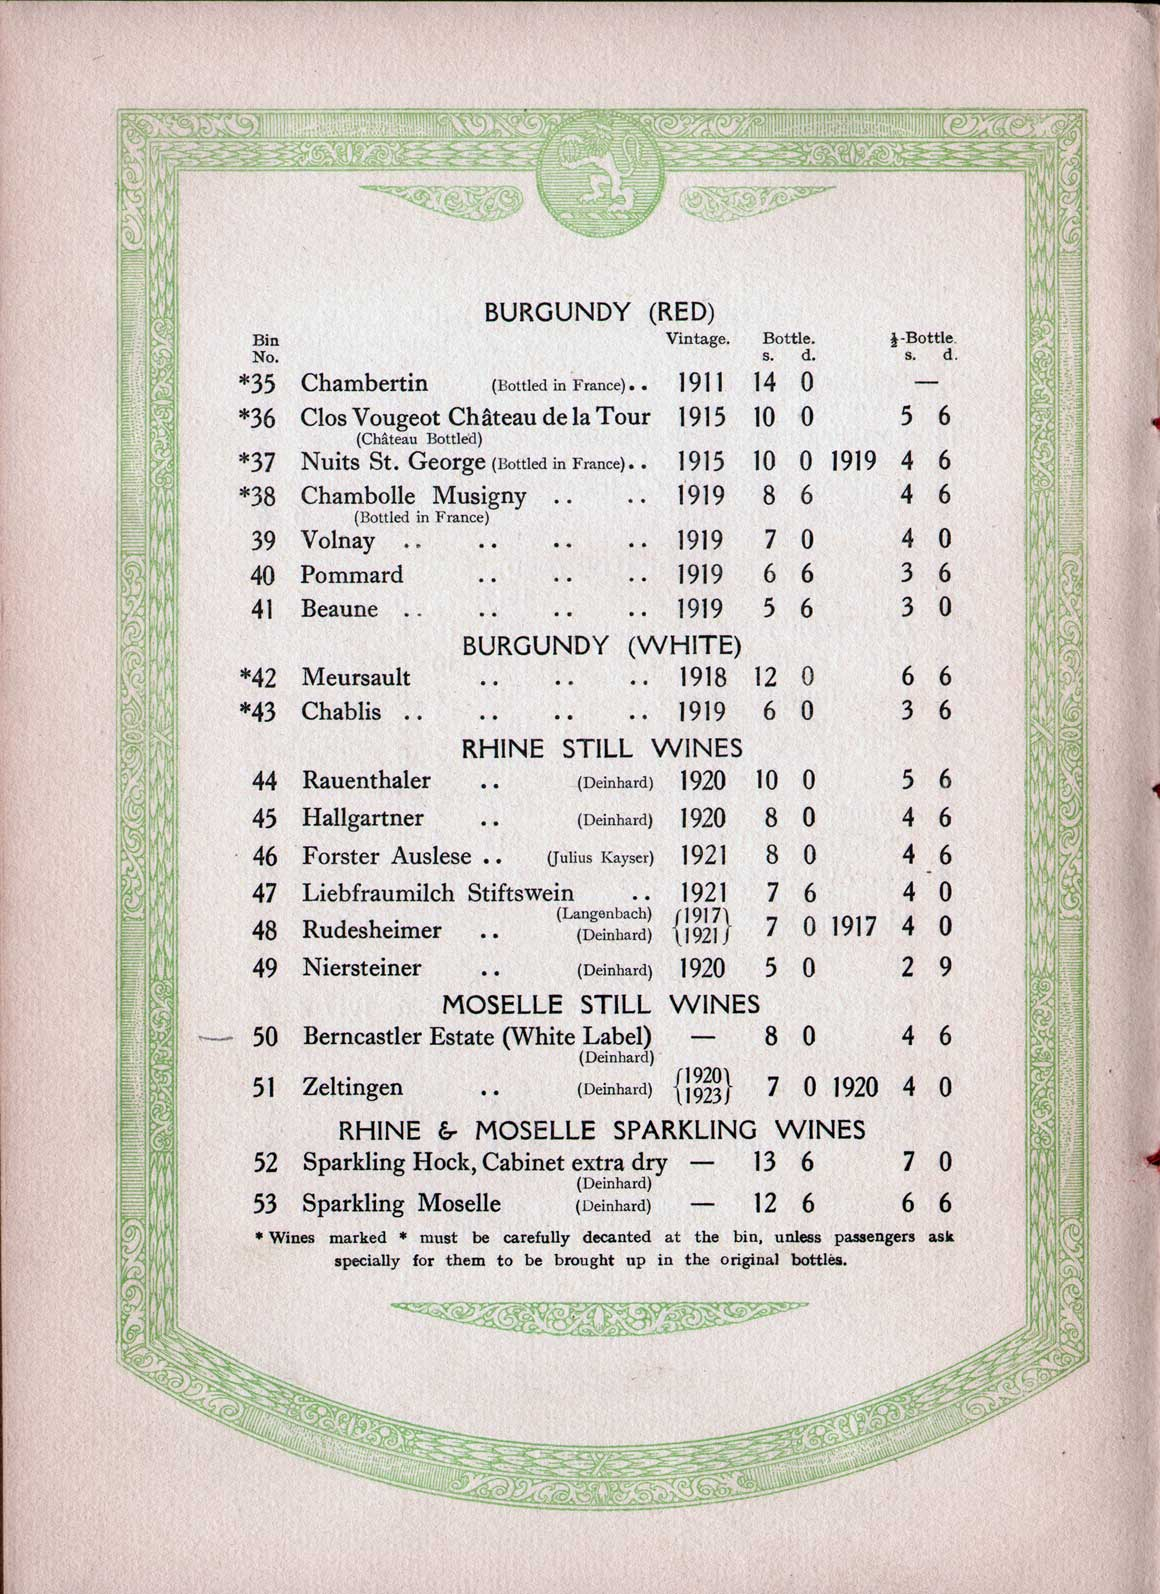 Cunard Line Wine List For April 1927 GG Archives